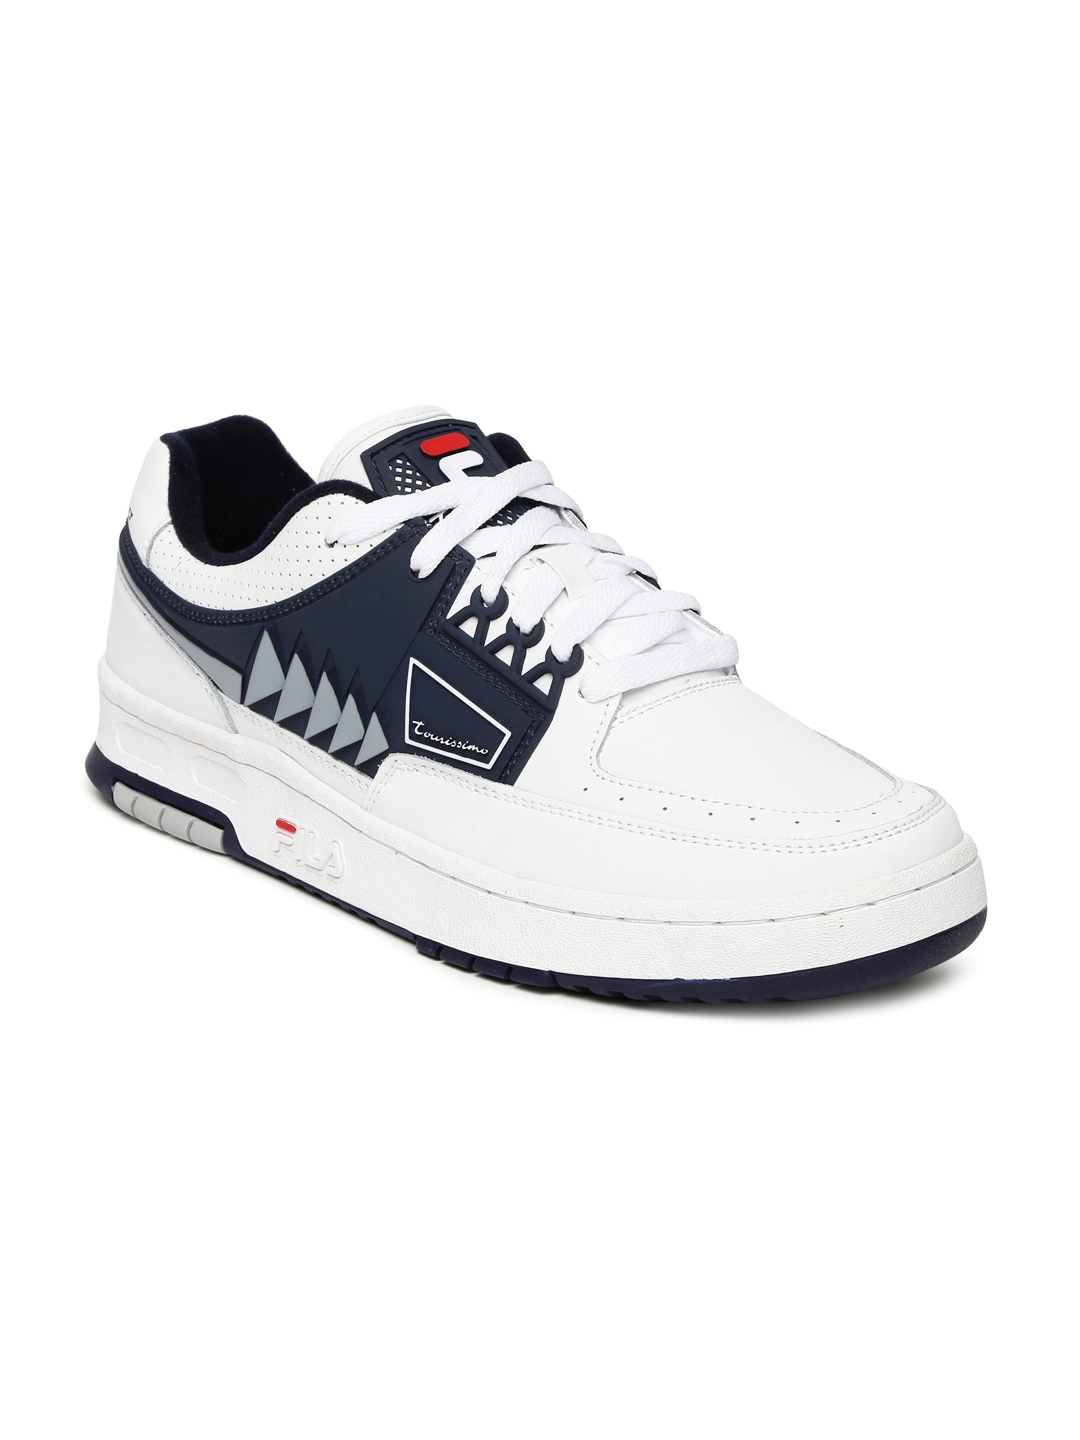 8d5f02e8815c Buy FILA Men White   Navy Tourissimo Low Leather Sneakers - Casual ...